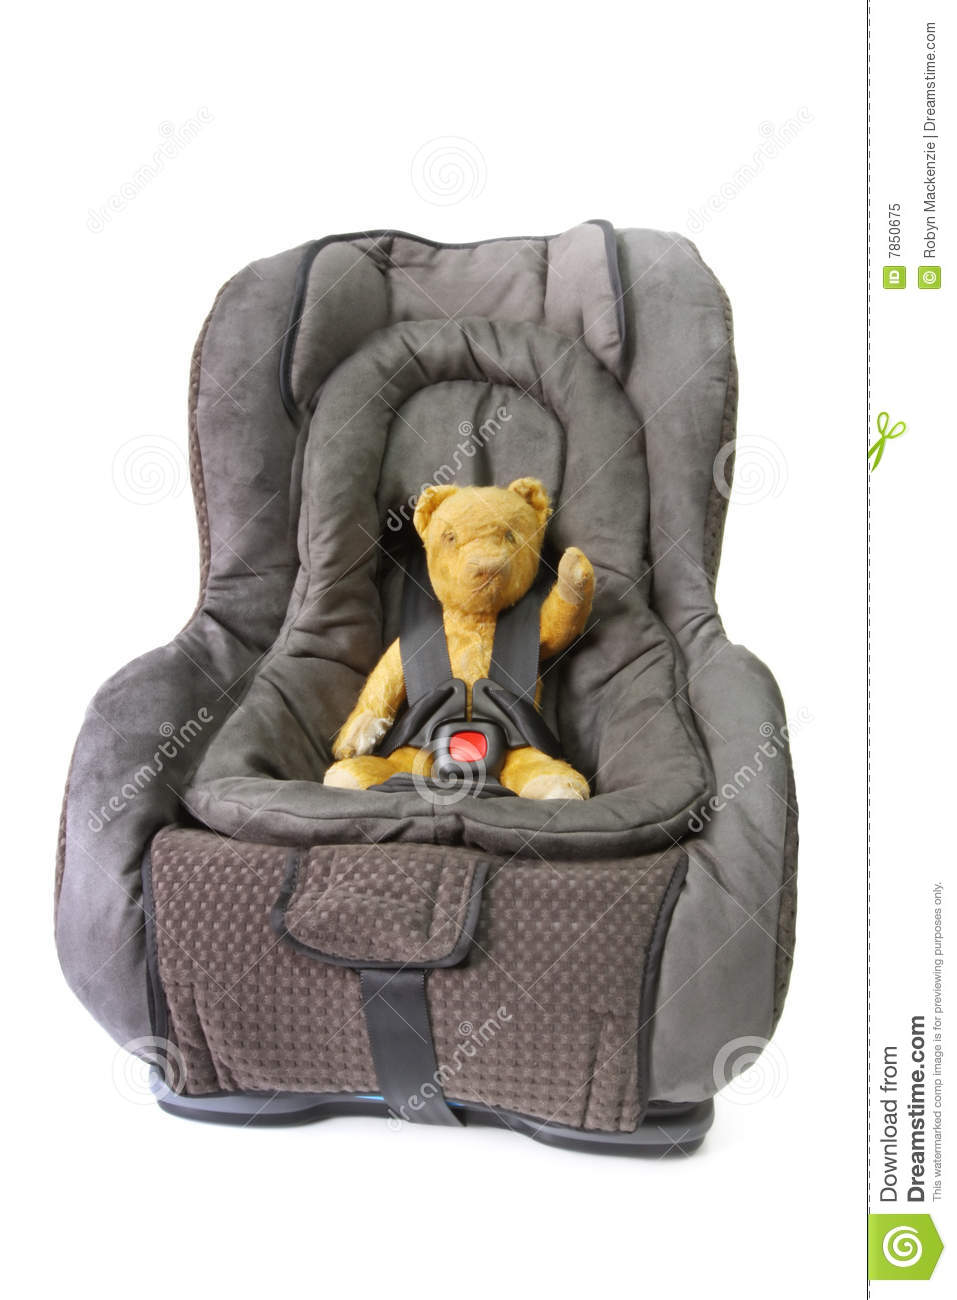 Car Seat With Teddy Royalty Free Stock Photo Image 7850675